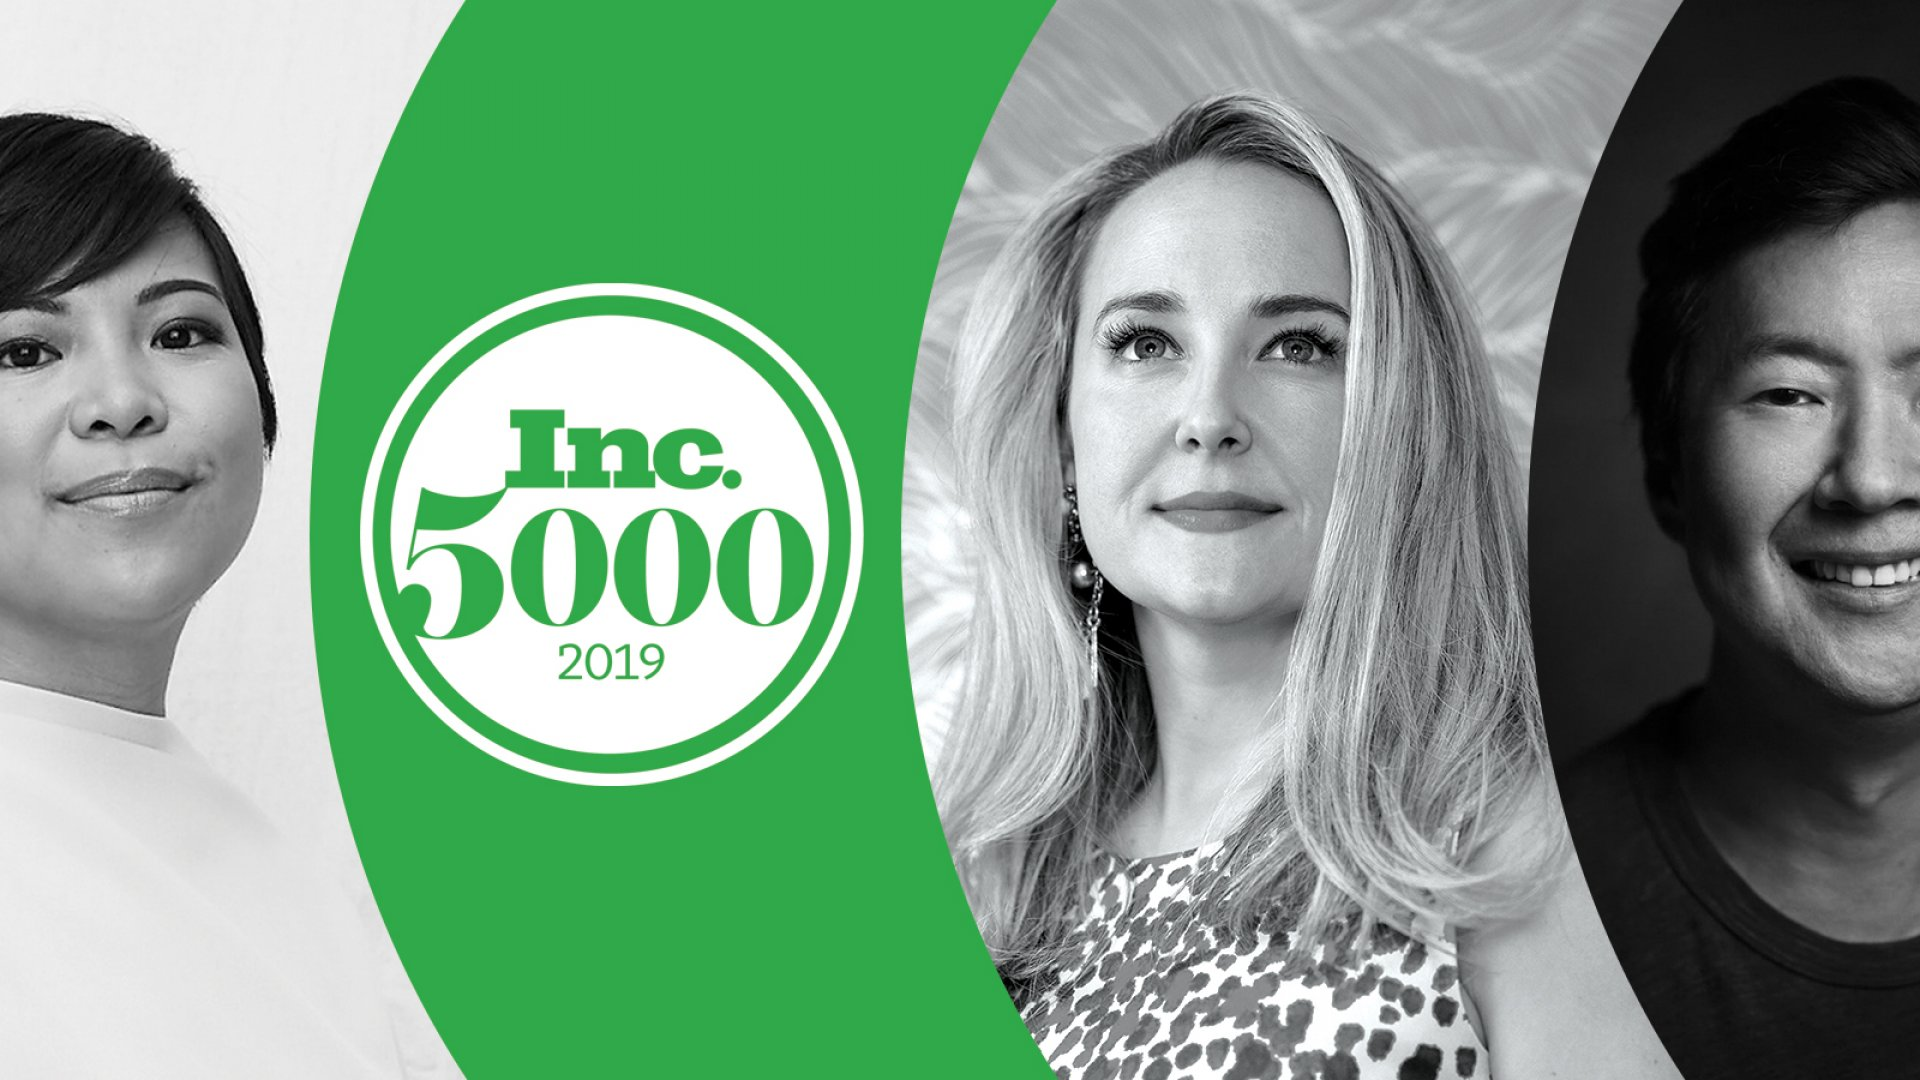 Here's an Inside Look at Everything That Happened at the 2019 Inc. 5000 Conference